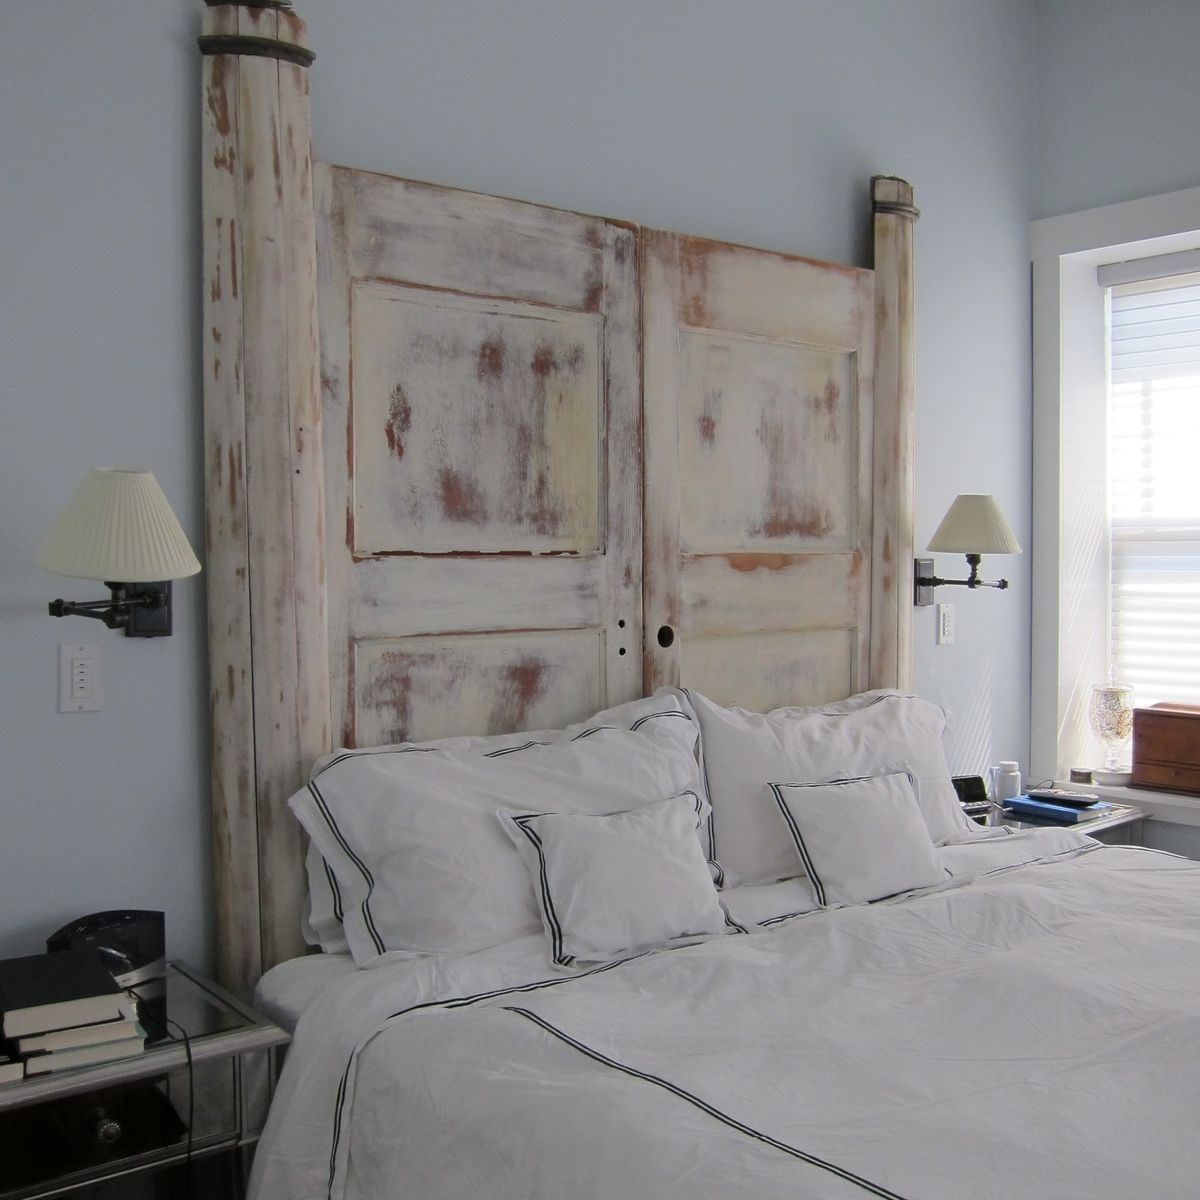 Bed Bath and Beyond Duvet | Luxury Cal King Comforter Sets | King Headboards